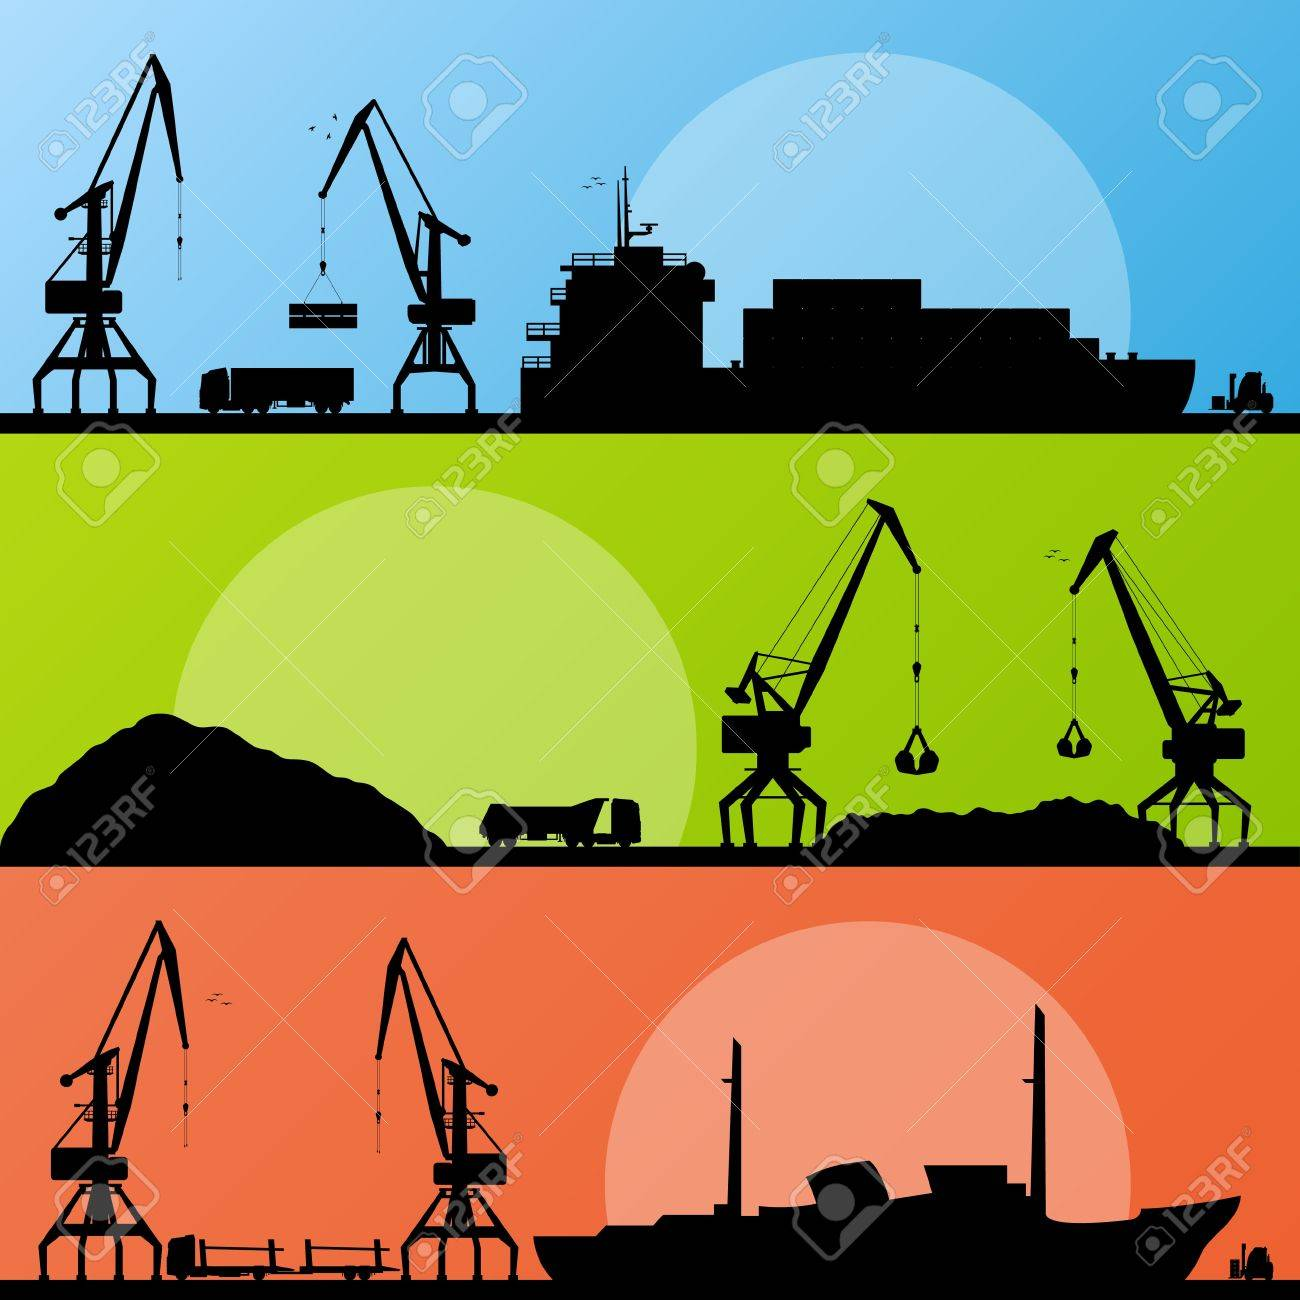 Industrial harbor, ships, transportation and crane seashore landscape Stock Vector - 16930364